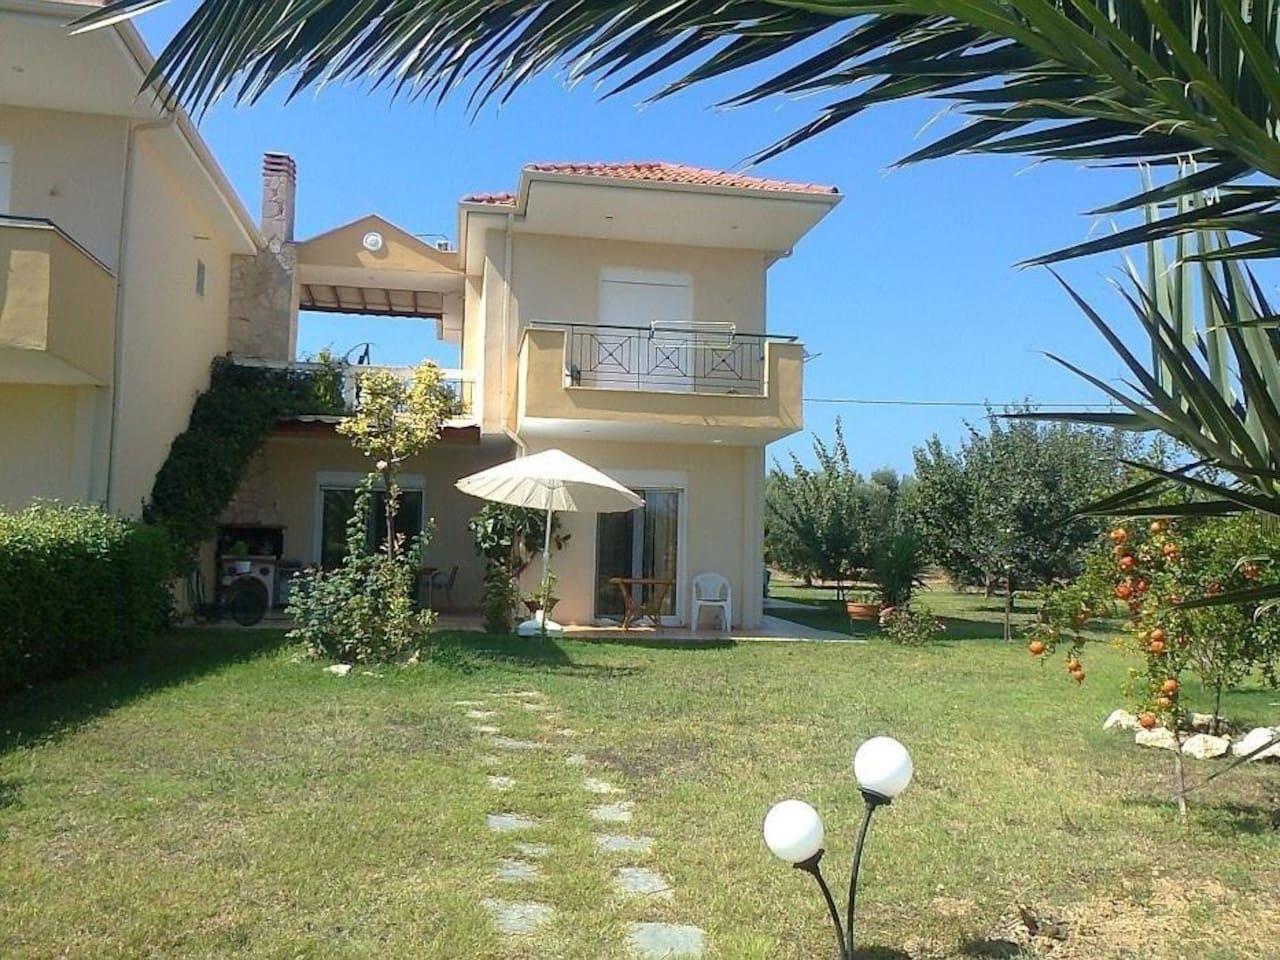 Private House with 500sq m private garden and 5000 sq m total garden and pool